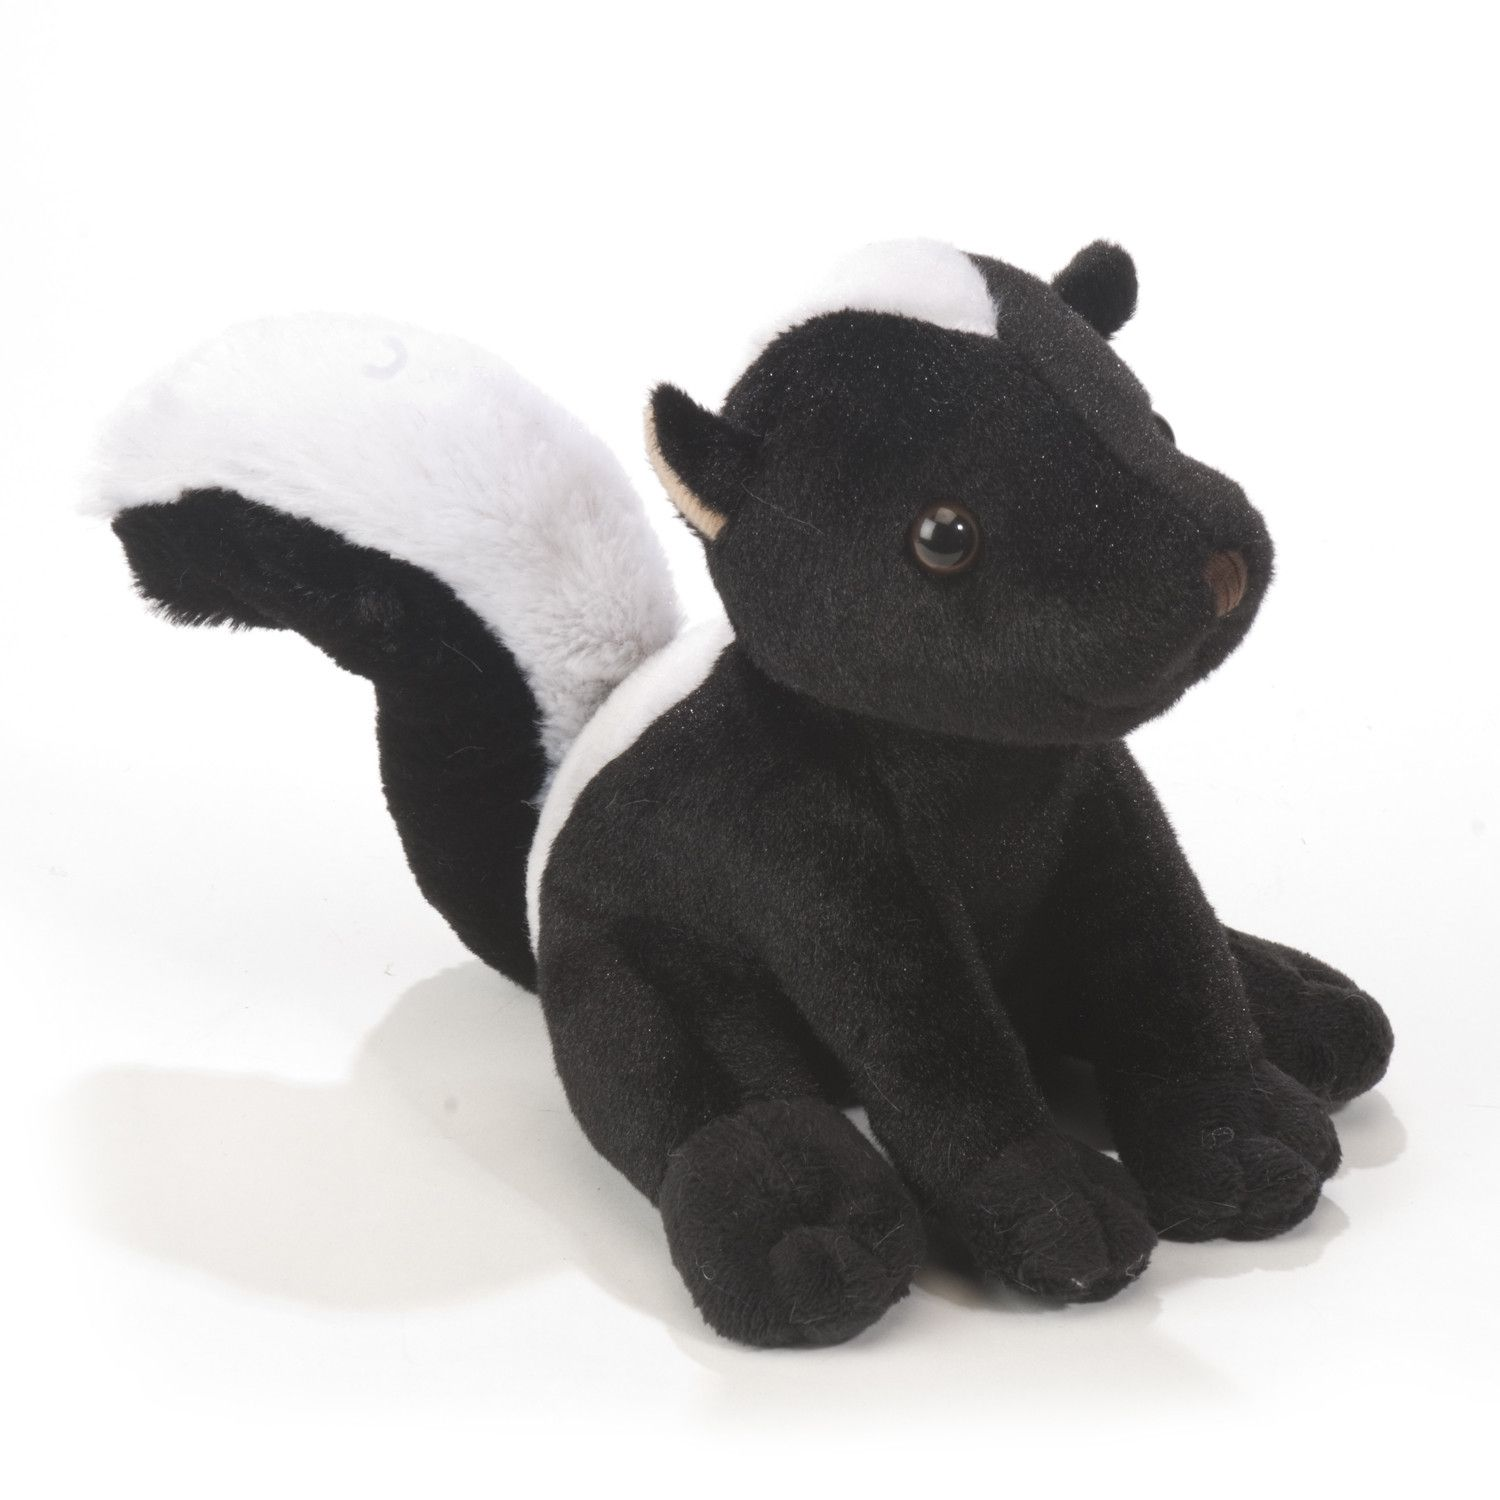 "Plush 6"" Sitting Skunk"